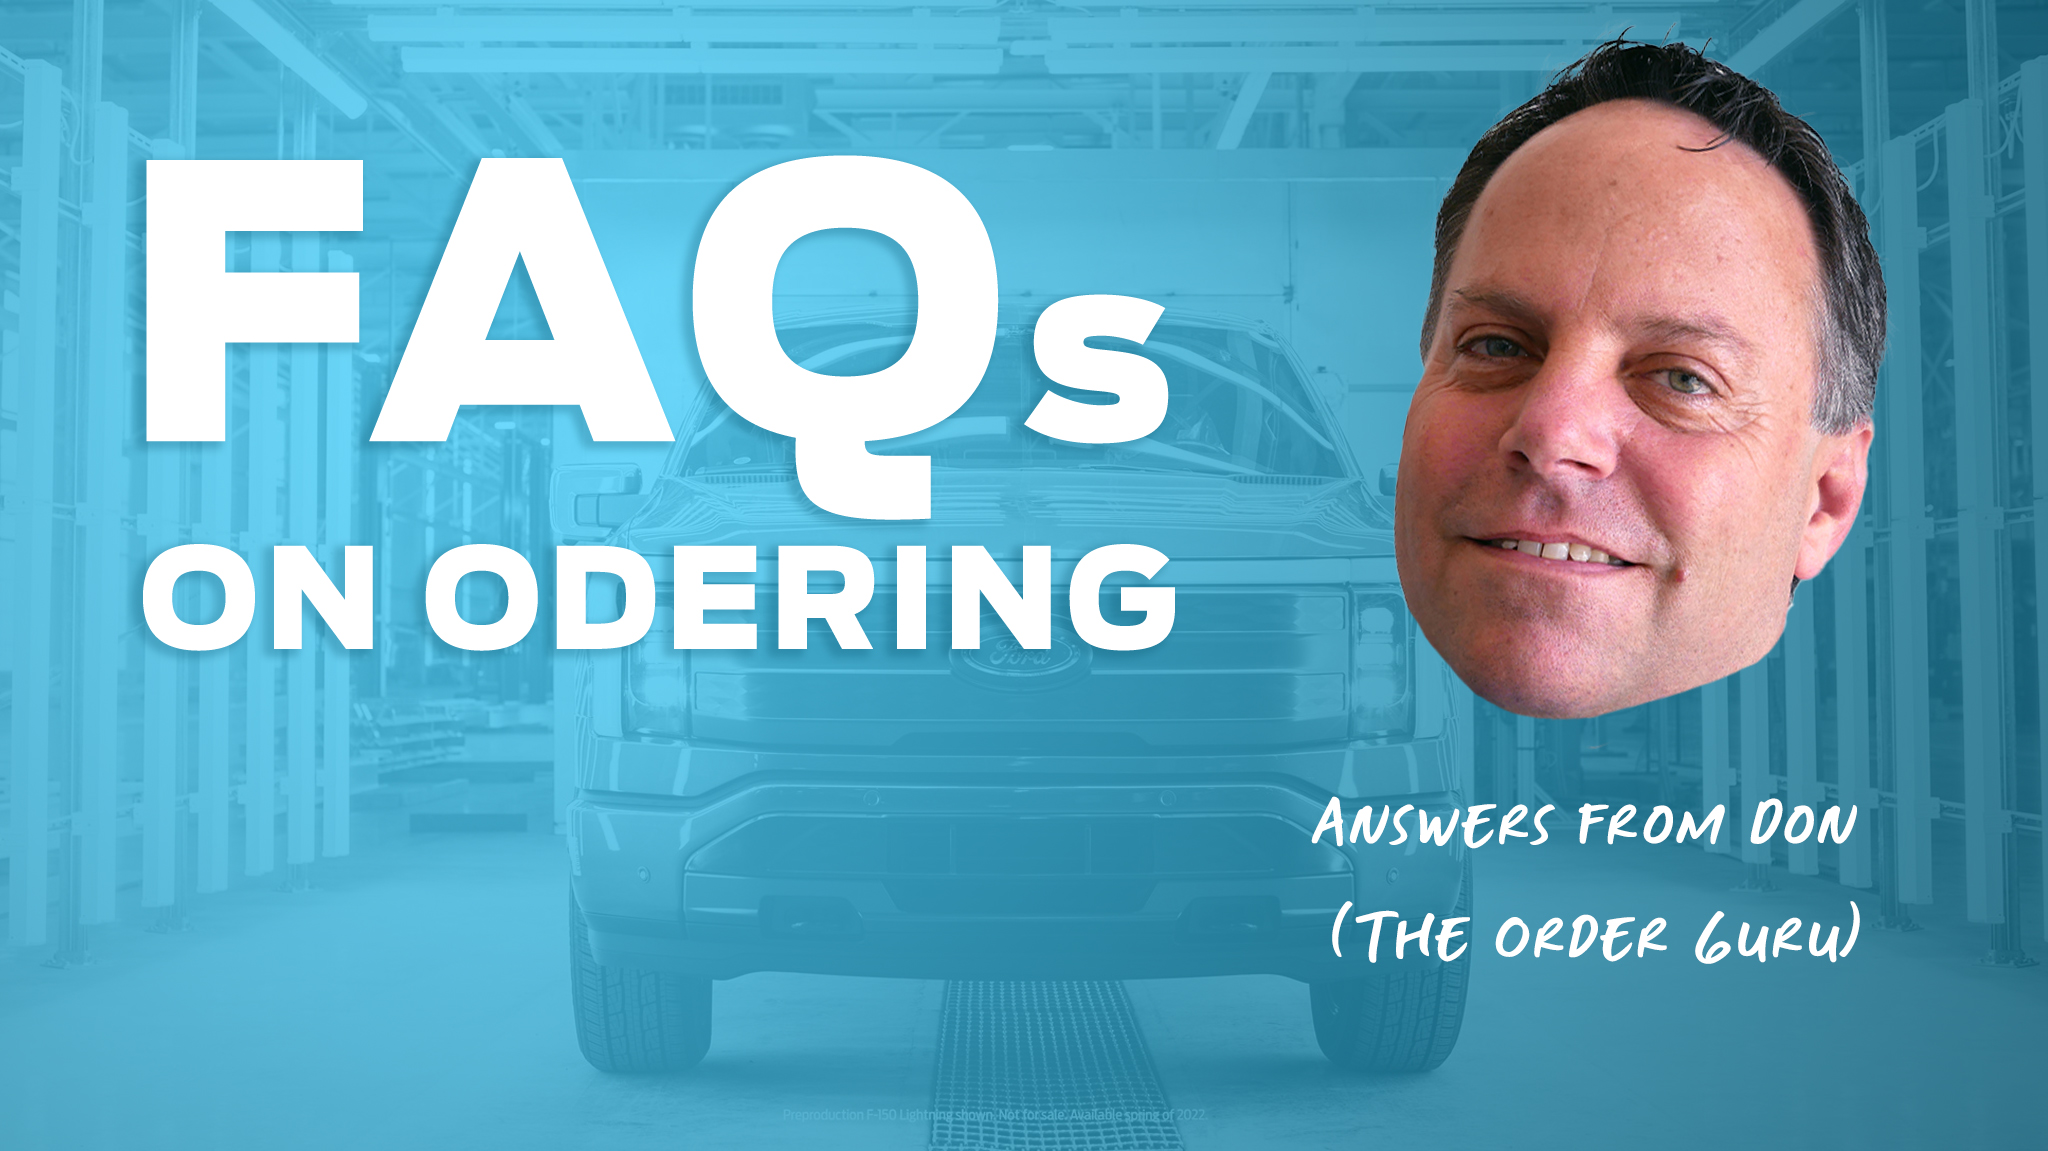 Frequently asked questions on Ordering a Vehicle